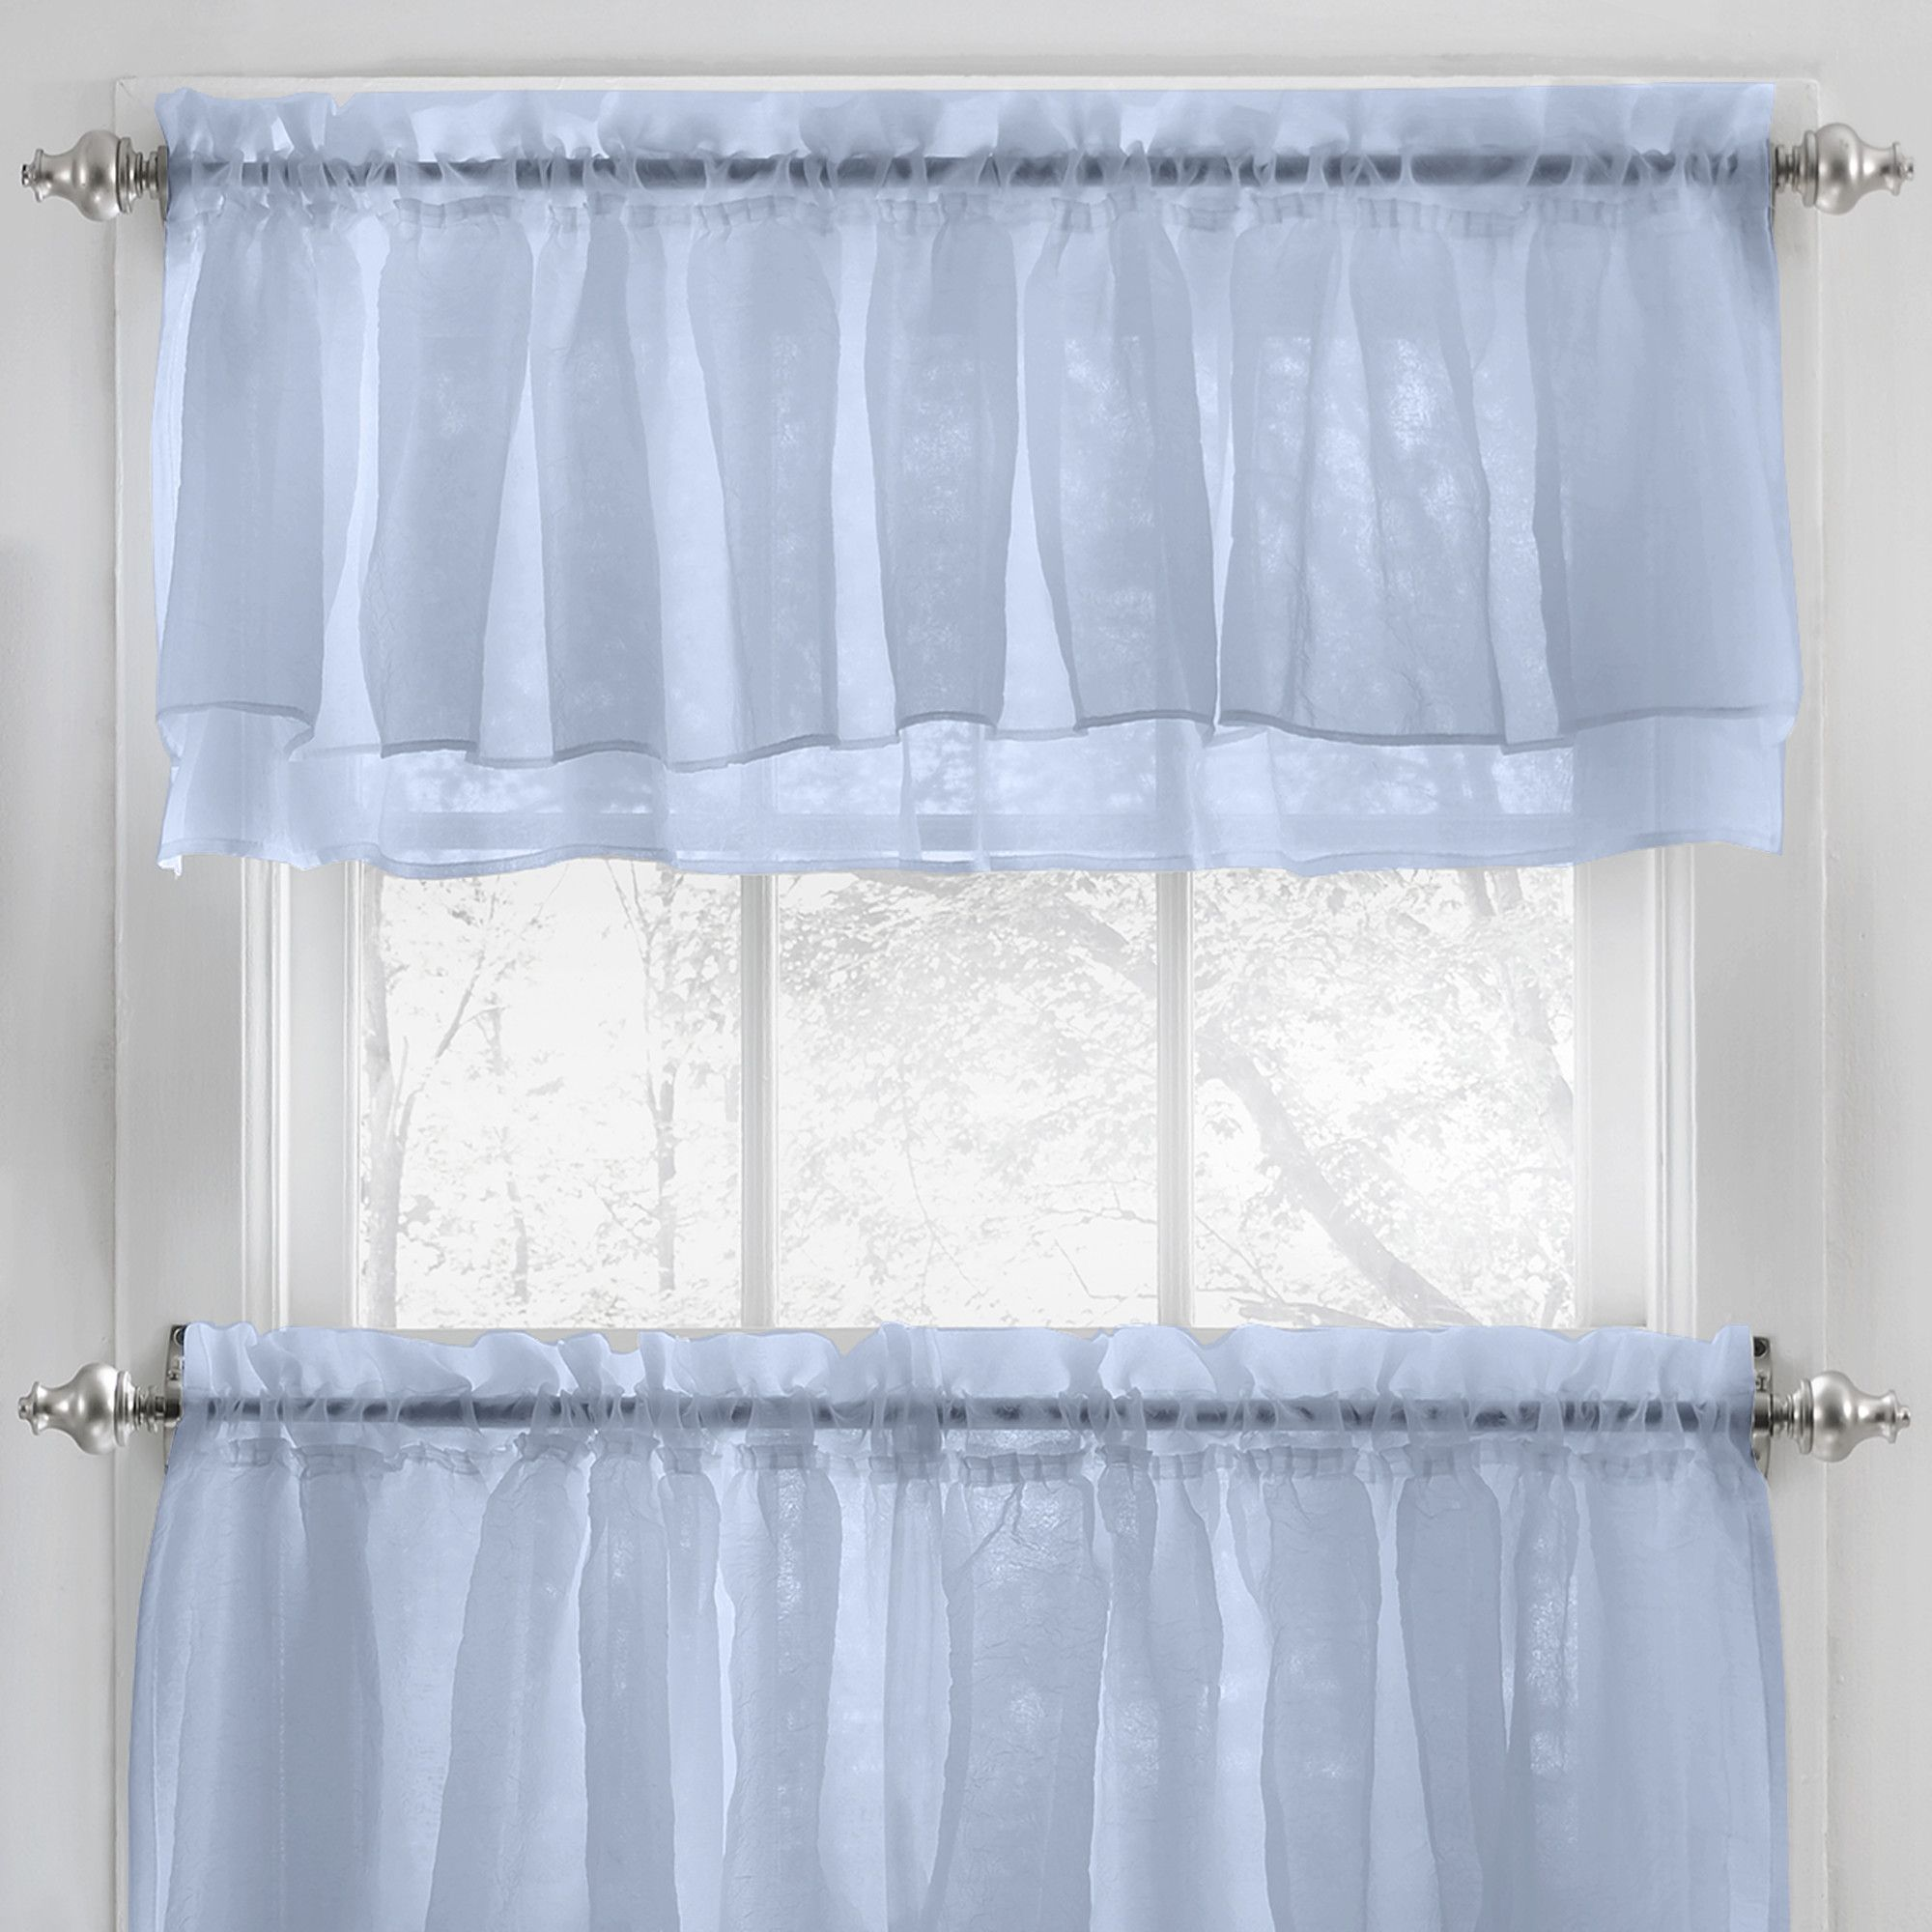 red ip gardens kitchen homes for better walmart valances check com